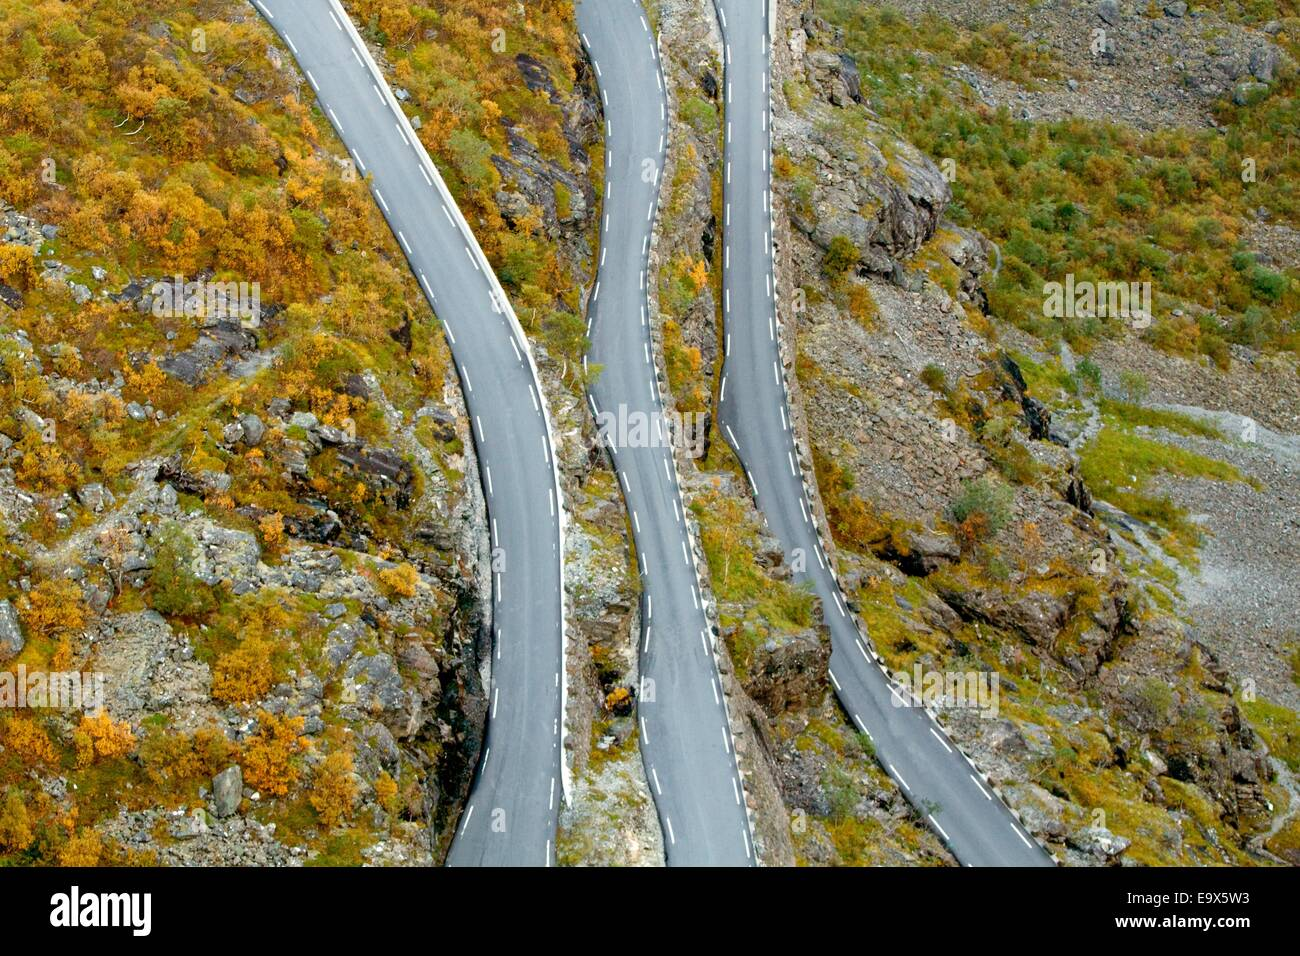 Twisted troll road in Norwegian mountains - Stock Image